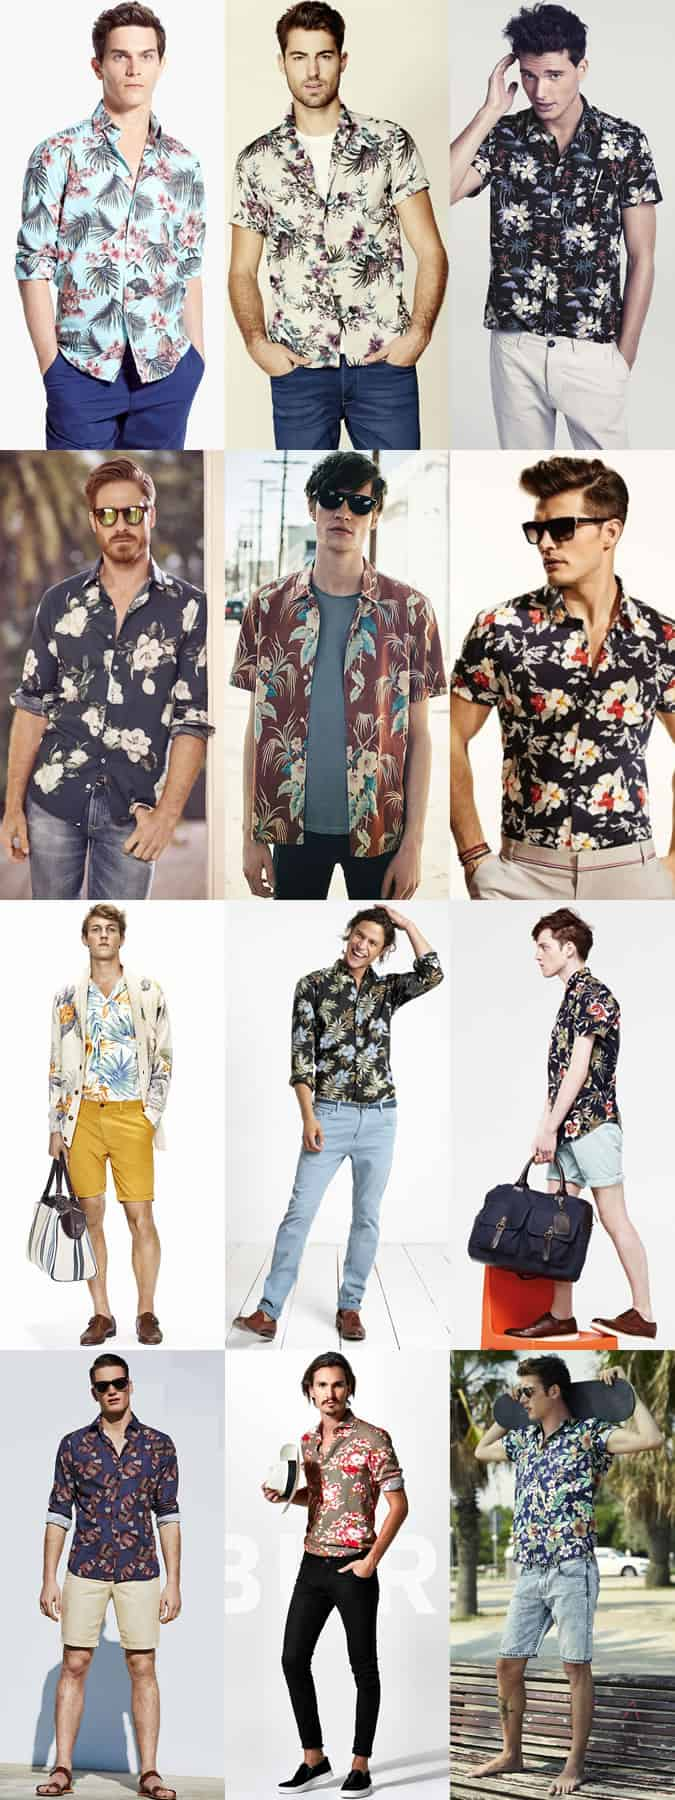 Men's Floral and Hawaiian Shirts Outfit Inspiration Lookbook